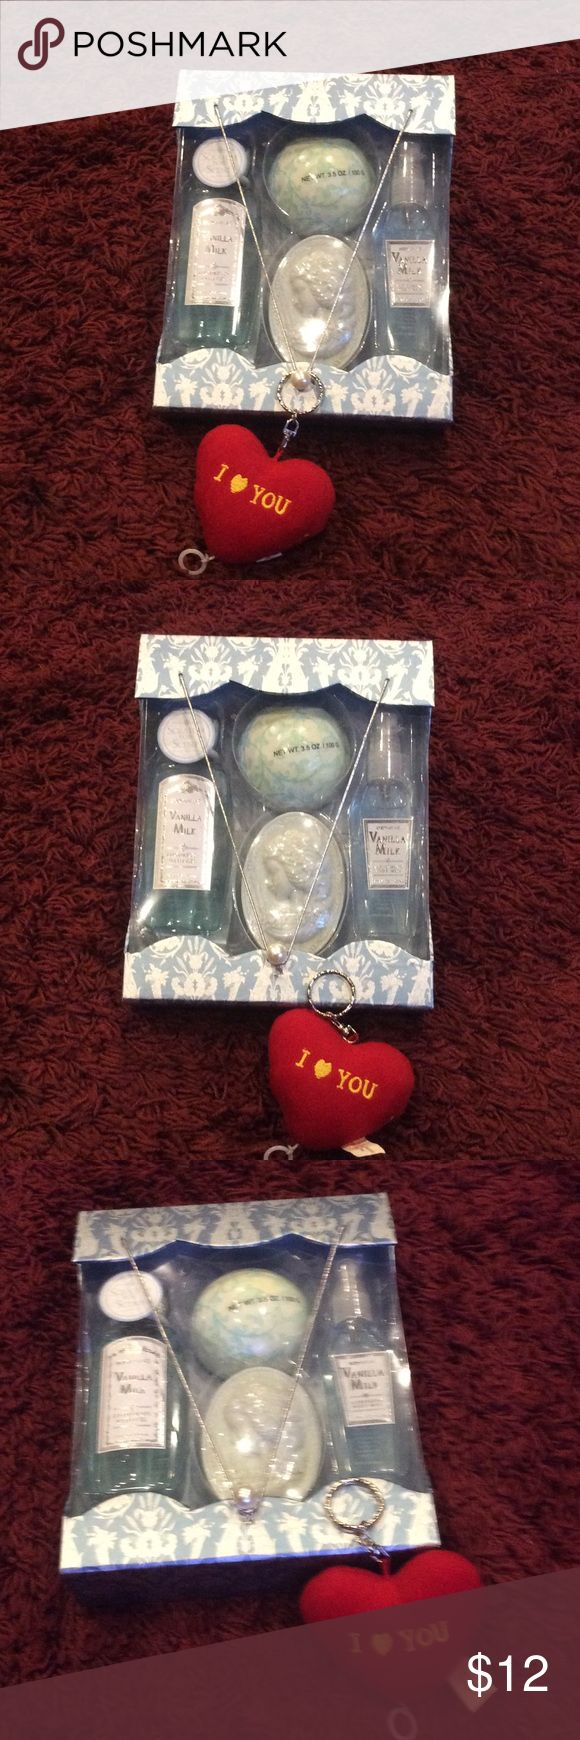 Vanilla milk bath set Brand new milk bath set has luxurious bath gel,soap,body mist &bath fizzes Other